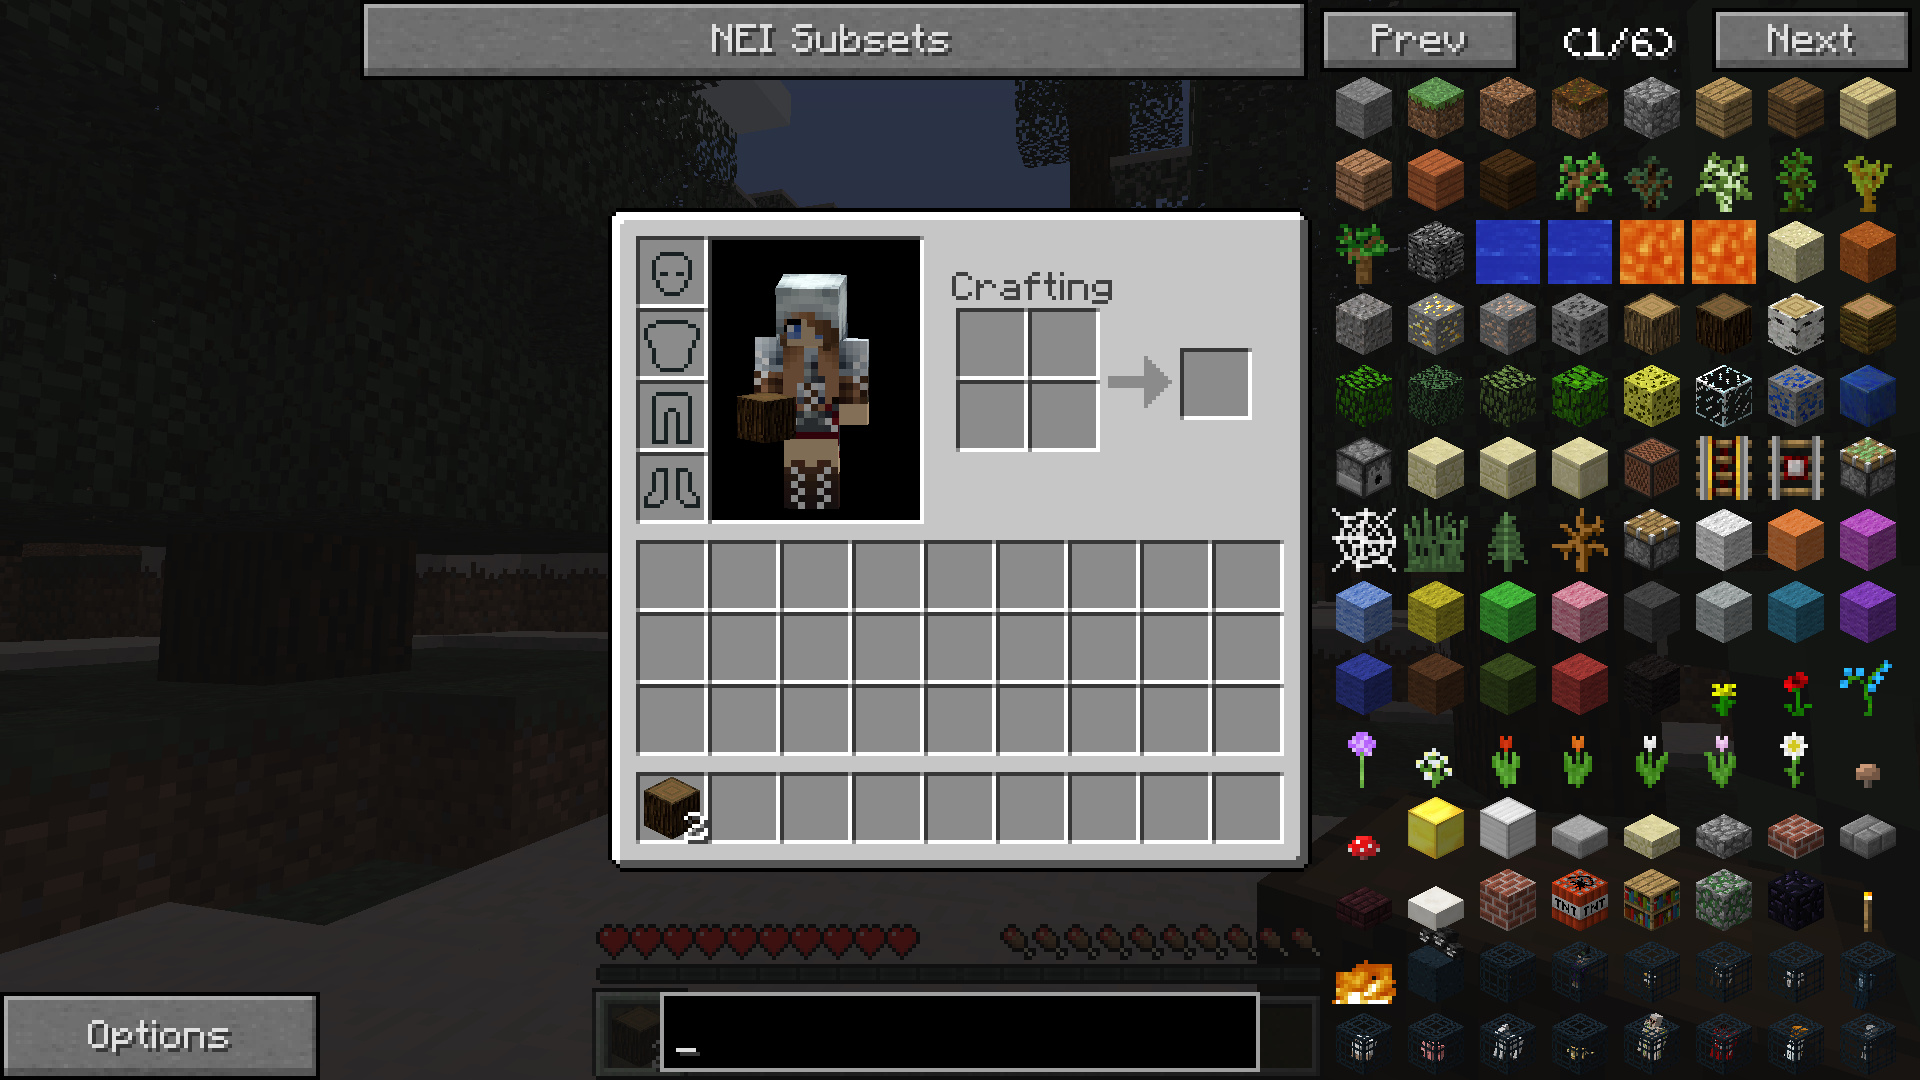 Let's take a page from modded Minecraft: NotEnoughItems